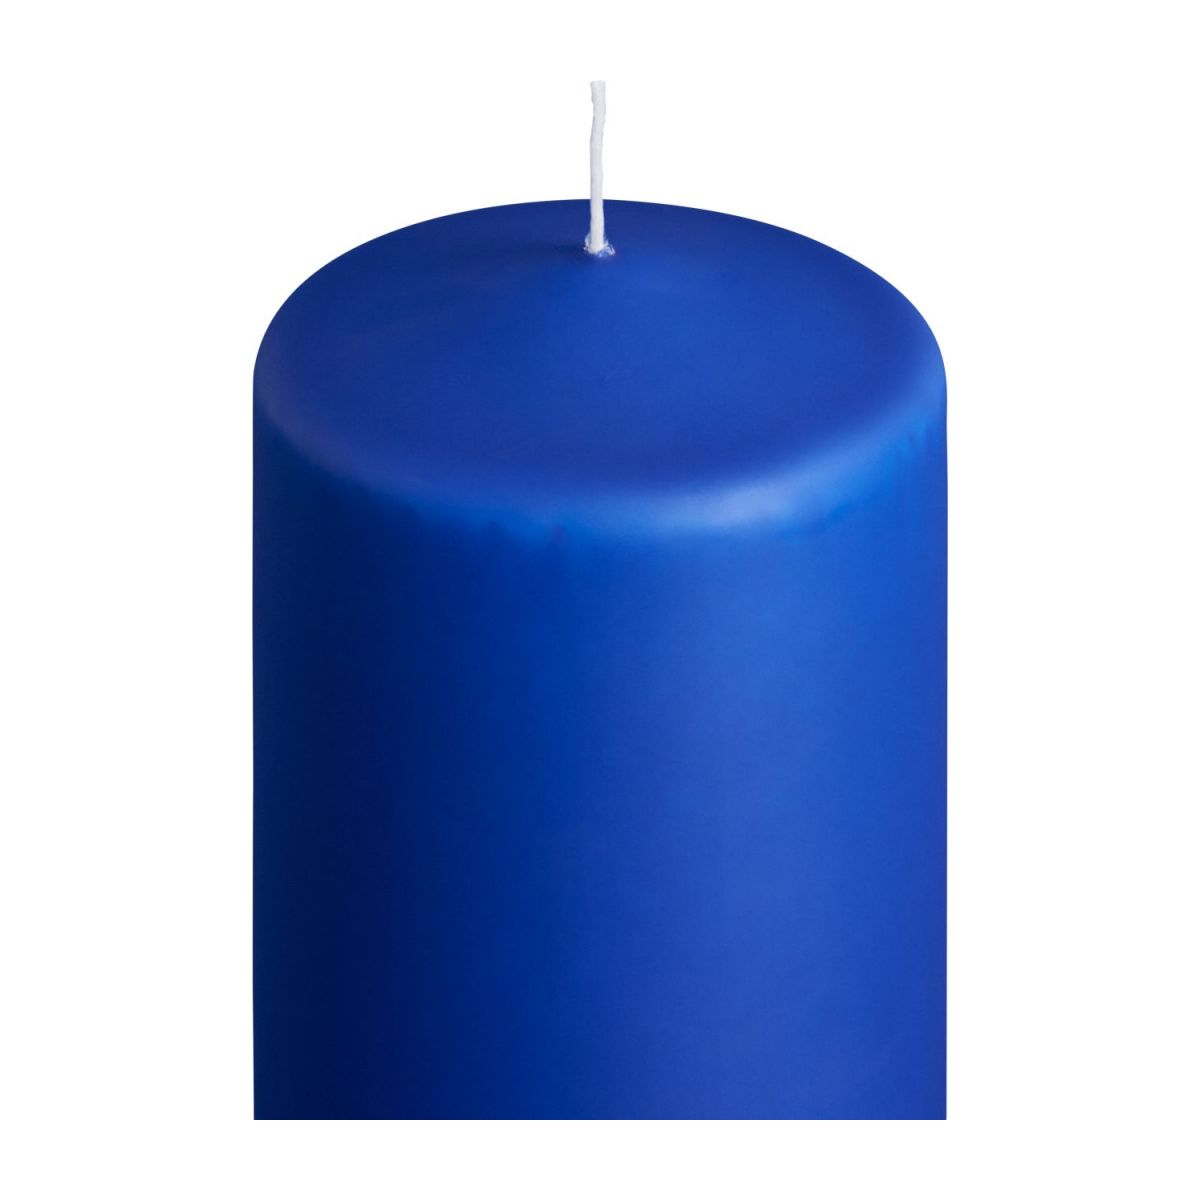 Cylindrical candle 19cm, blue n°2